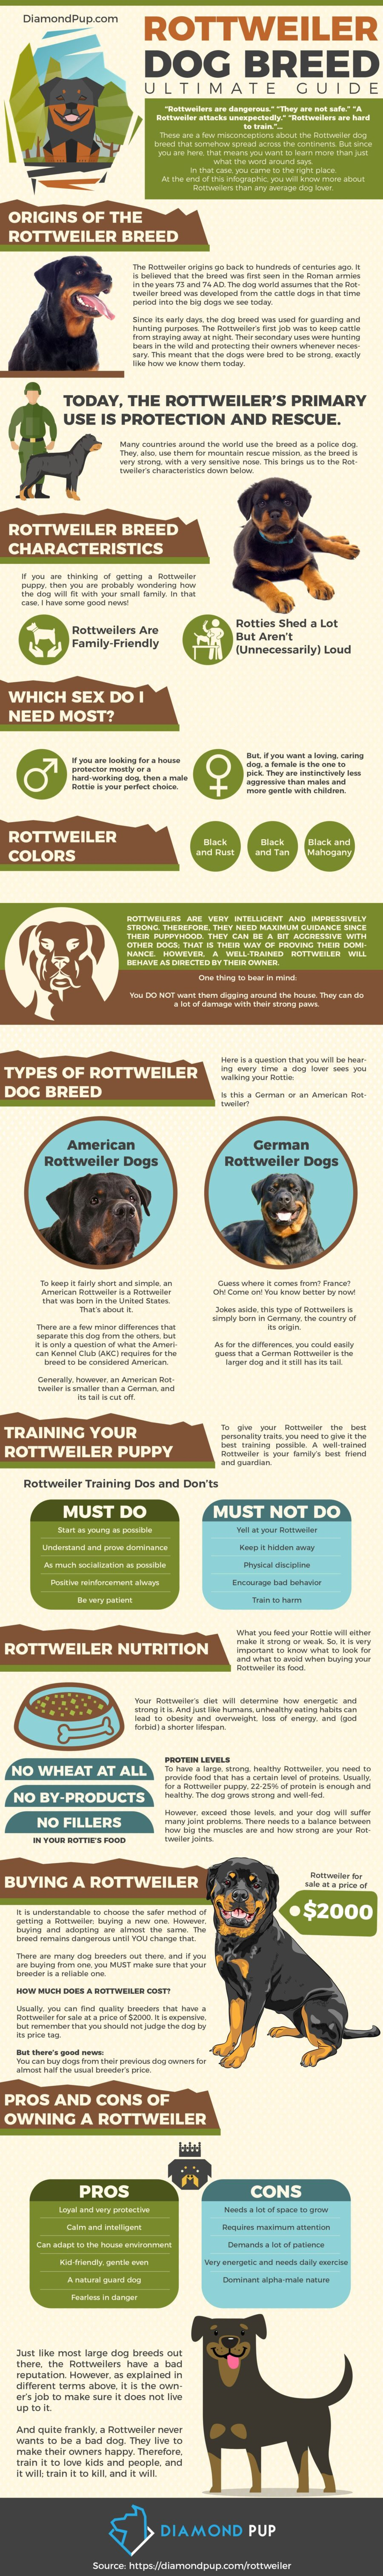 FitBark_Diamond_Pup_Rottweiler_Info-900x6054 | Rottweiler Dog Breed: A Great Family Protector